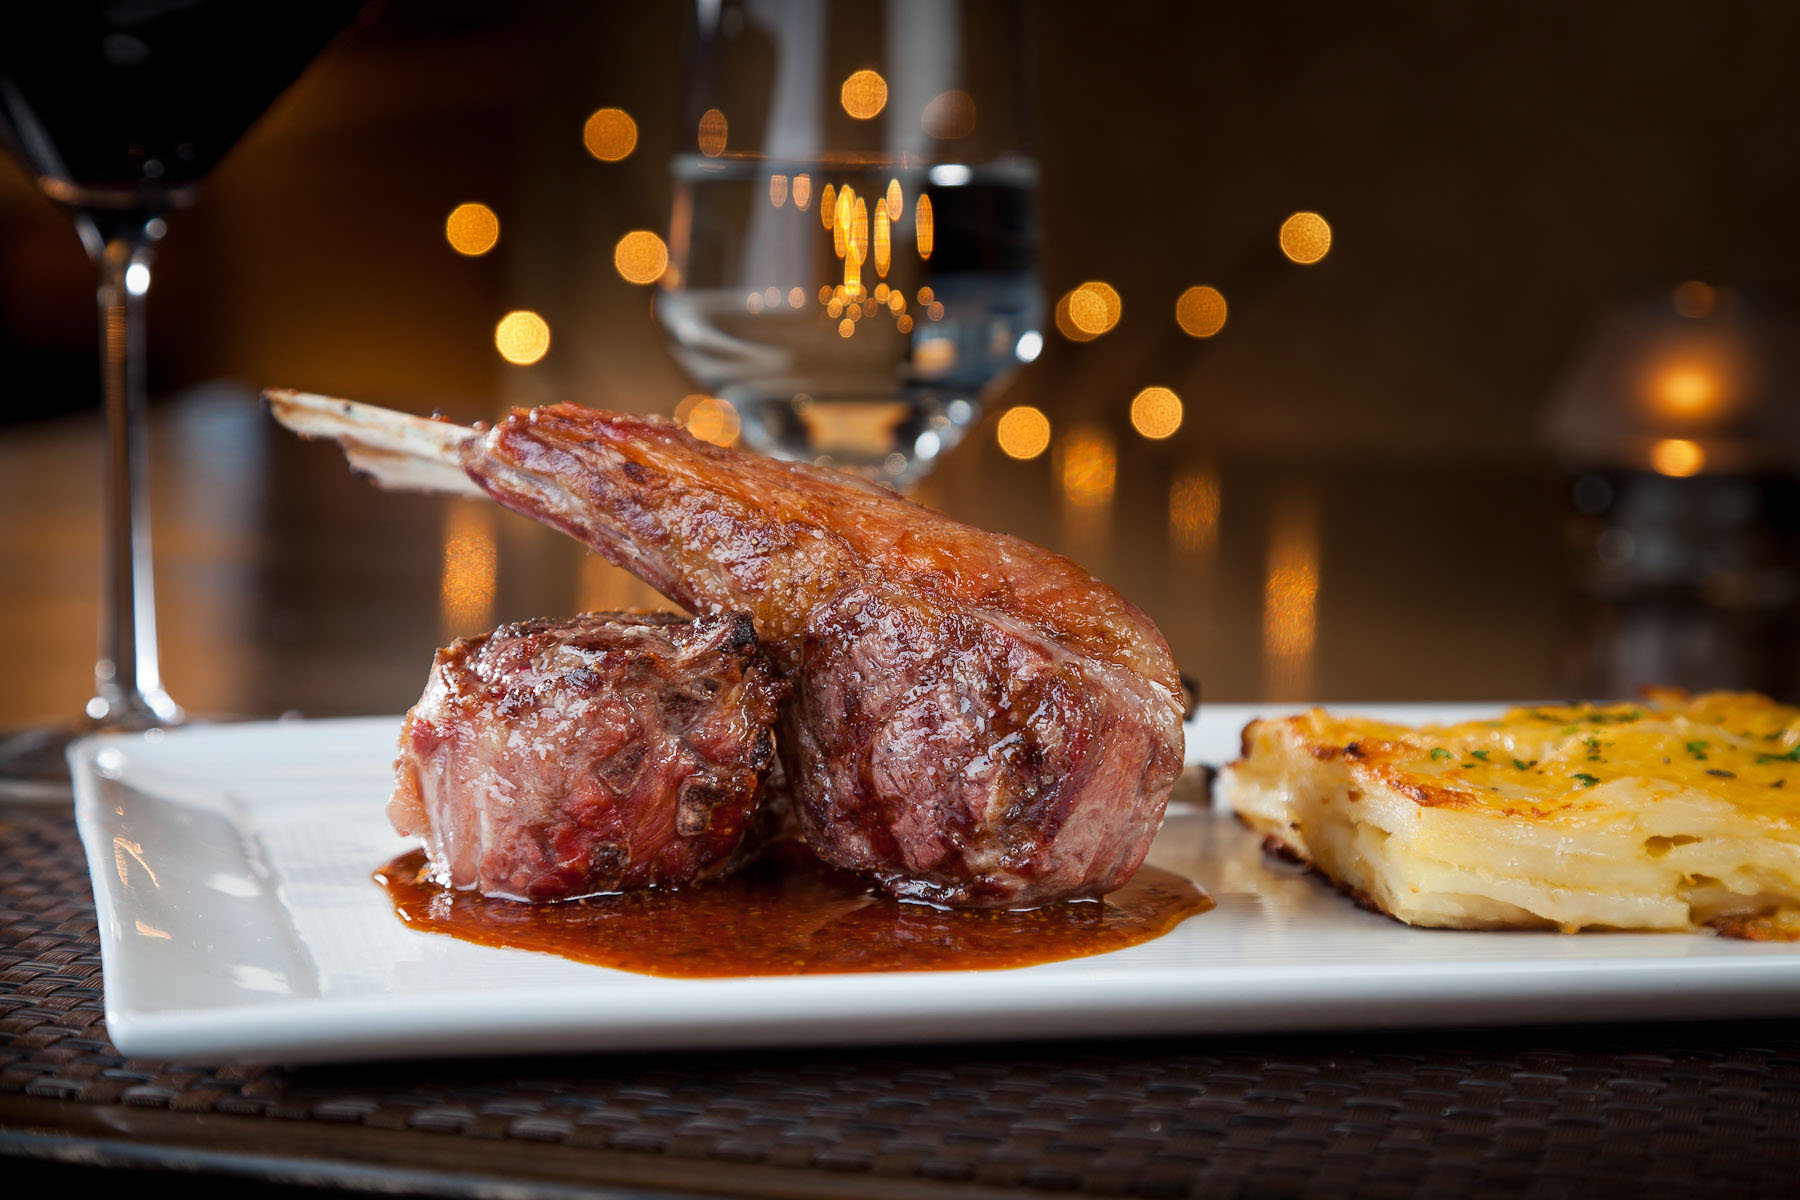 Lamb Chops with a side of potatoes au gratin prepared by Chef Todd Adkins of Hideaway Steakhouse in Westminster, CO